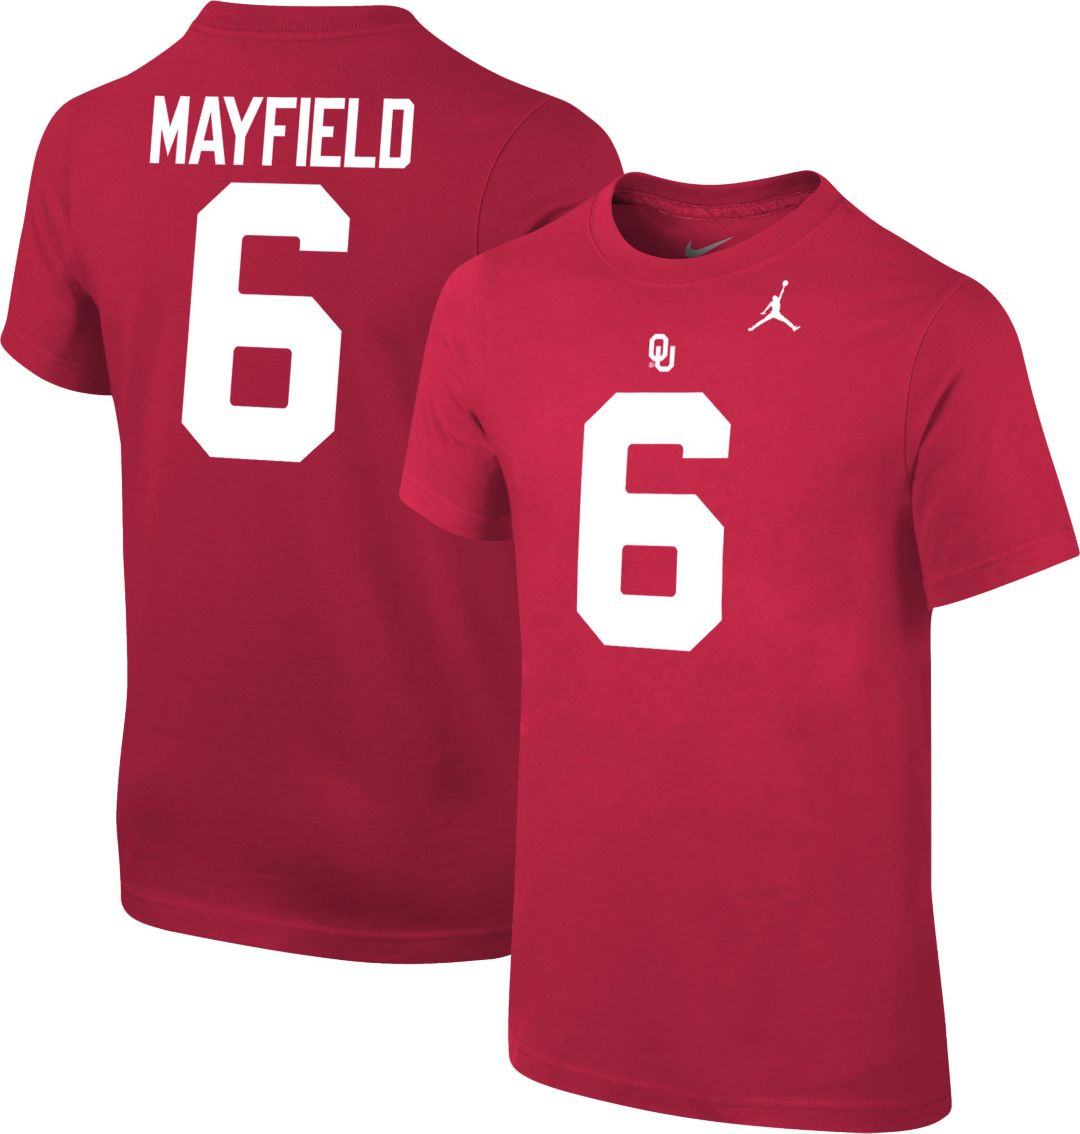 size 40 c09ce 41d33 Jordan Youth Baker Mayfield Oklahoma Sooners #6 Crimson Cotton Football  Jersey T-Shirt